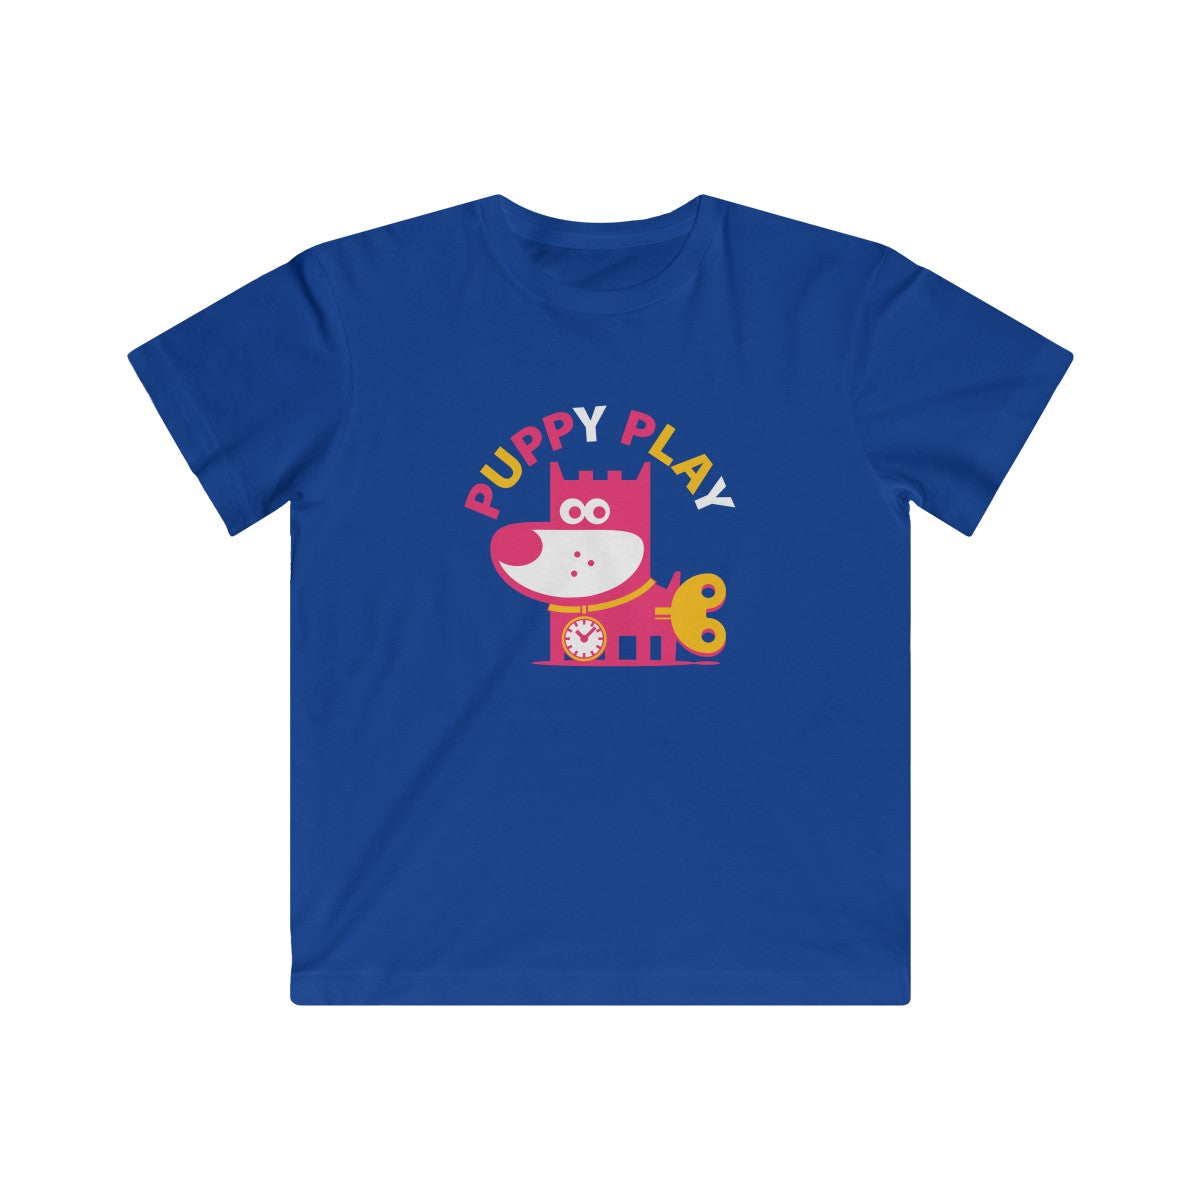 Puppy Play III . Kids Fine Jersey Tee